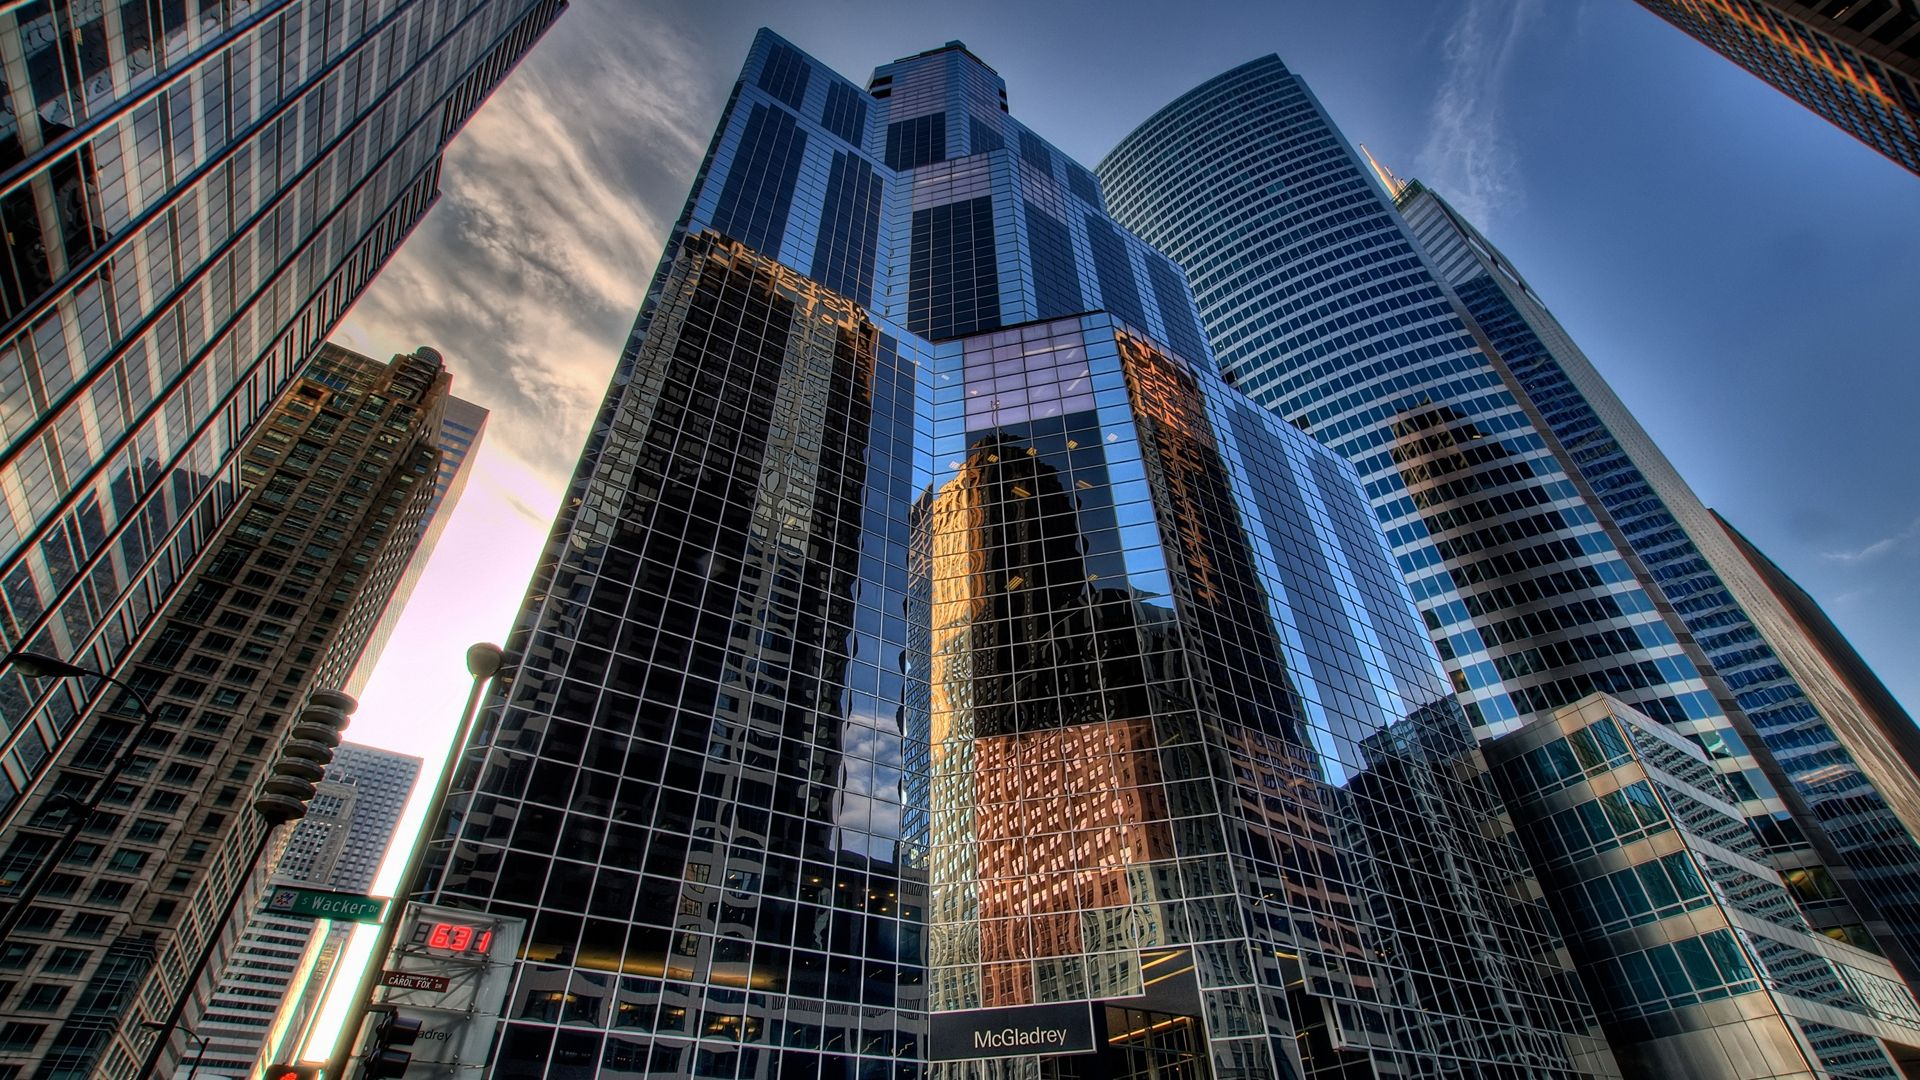 HD Wall Paper 1920X1080 Chicago chicago city reflection